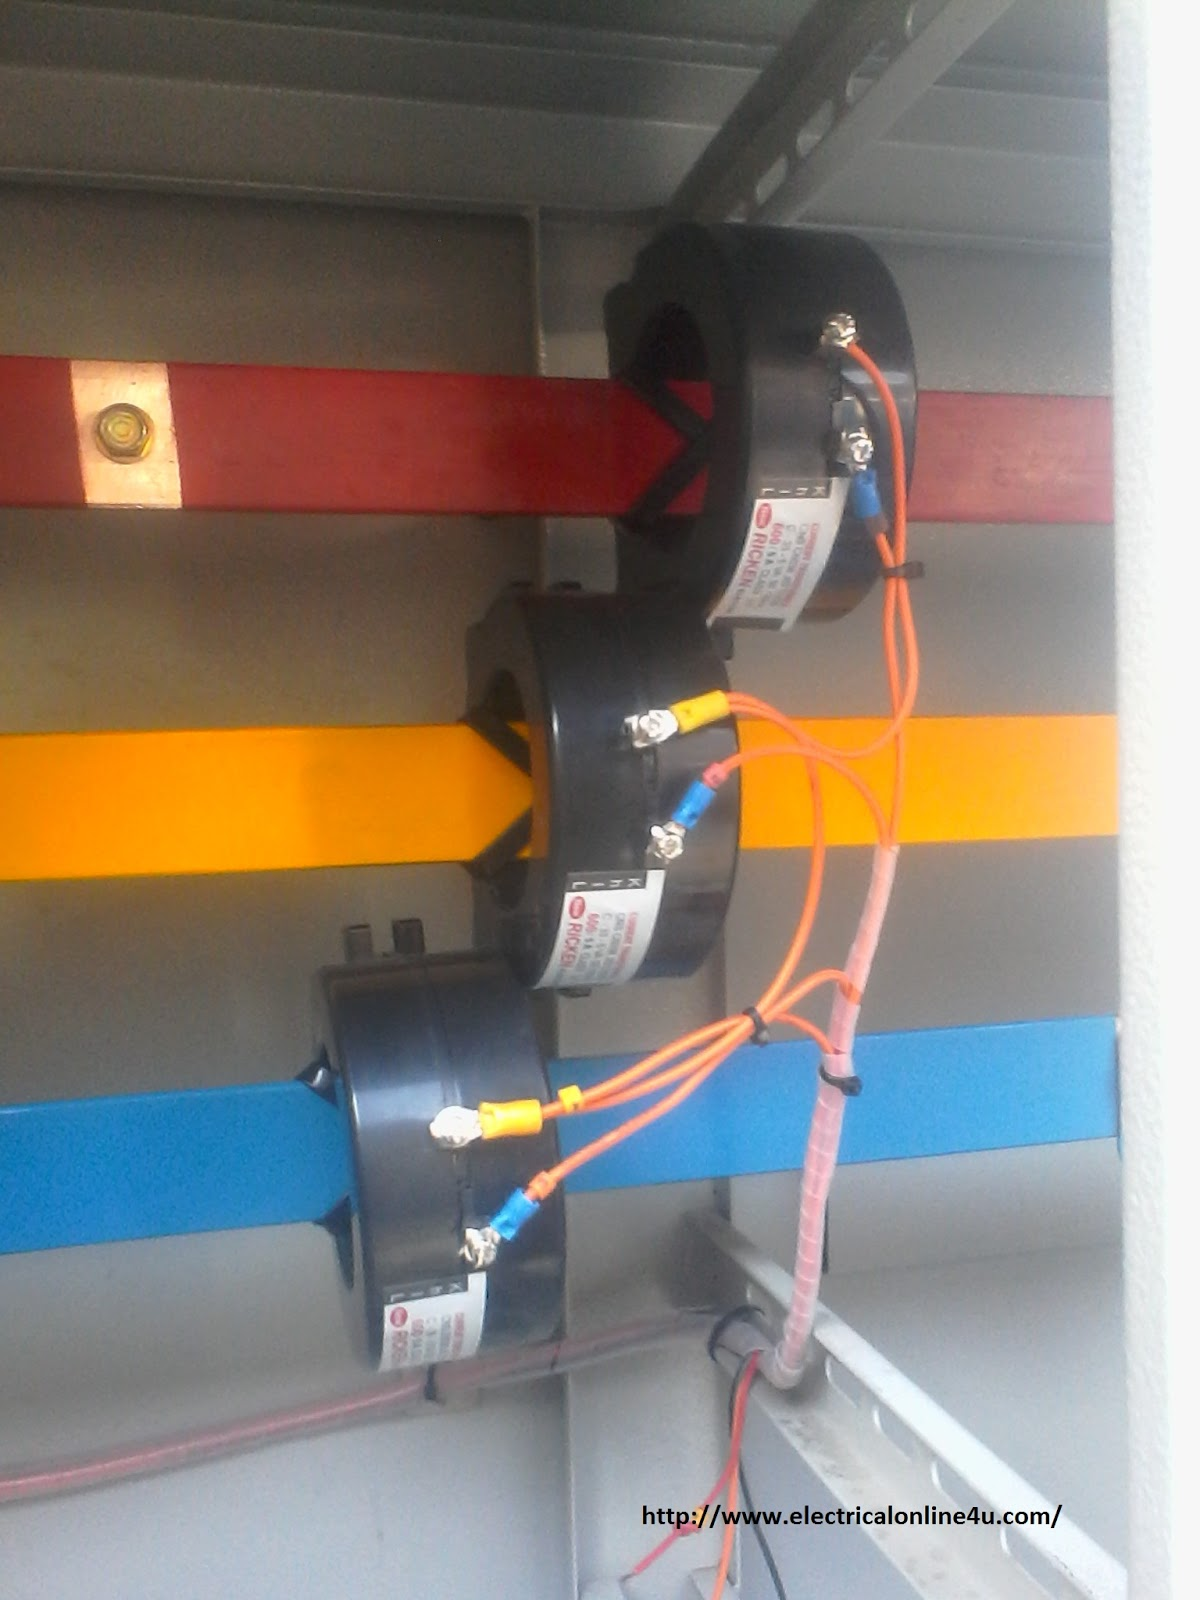 current%2Btransformer%2Binstillation%2Bfor%2Bthree%2Bphase%2Bwiring current transformer installation for three phase power supply ct Basic Electrical Wiring Diagrams at honlapkeszites.co